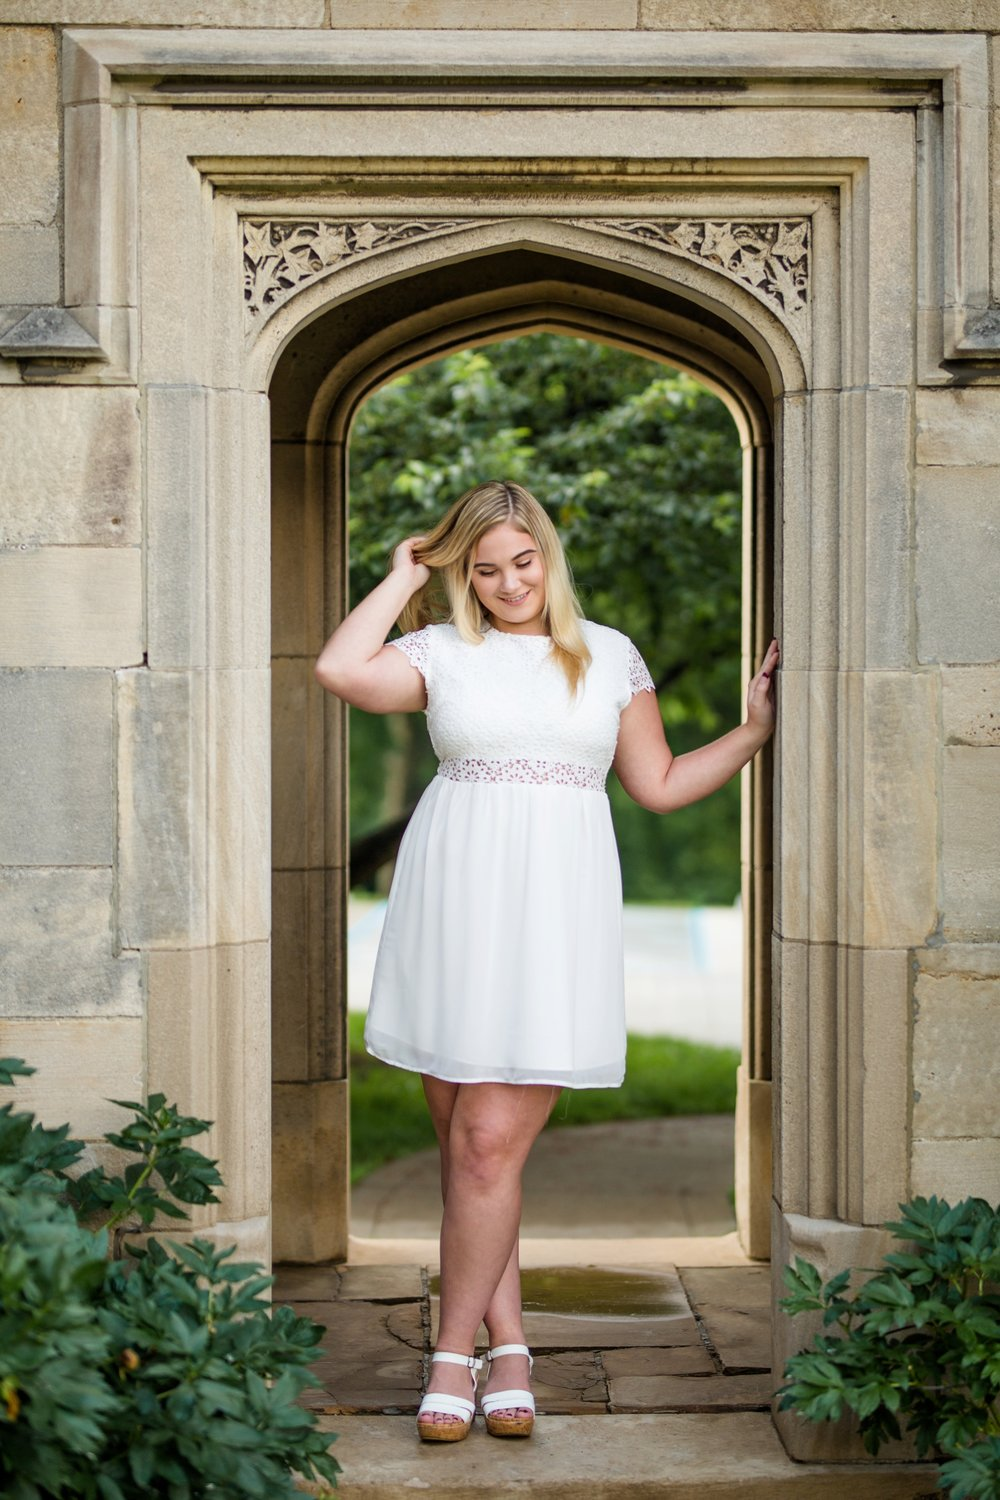 hartwood acres senior photos, best places for senior photos in pittsburgh, best locations for senior photos in pittsburgh, hartwood acres senior pictures, pittsburgh senior photographer, rain photos